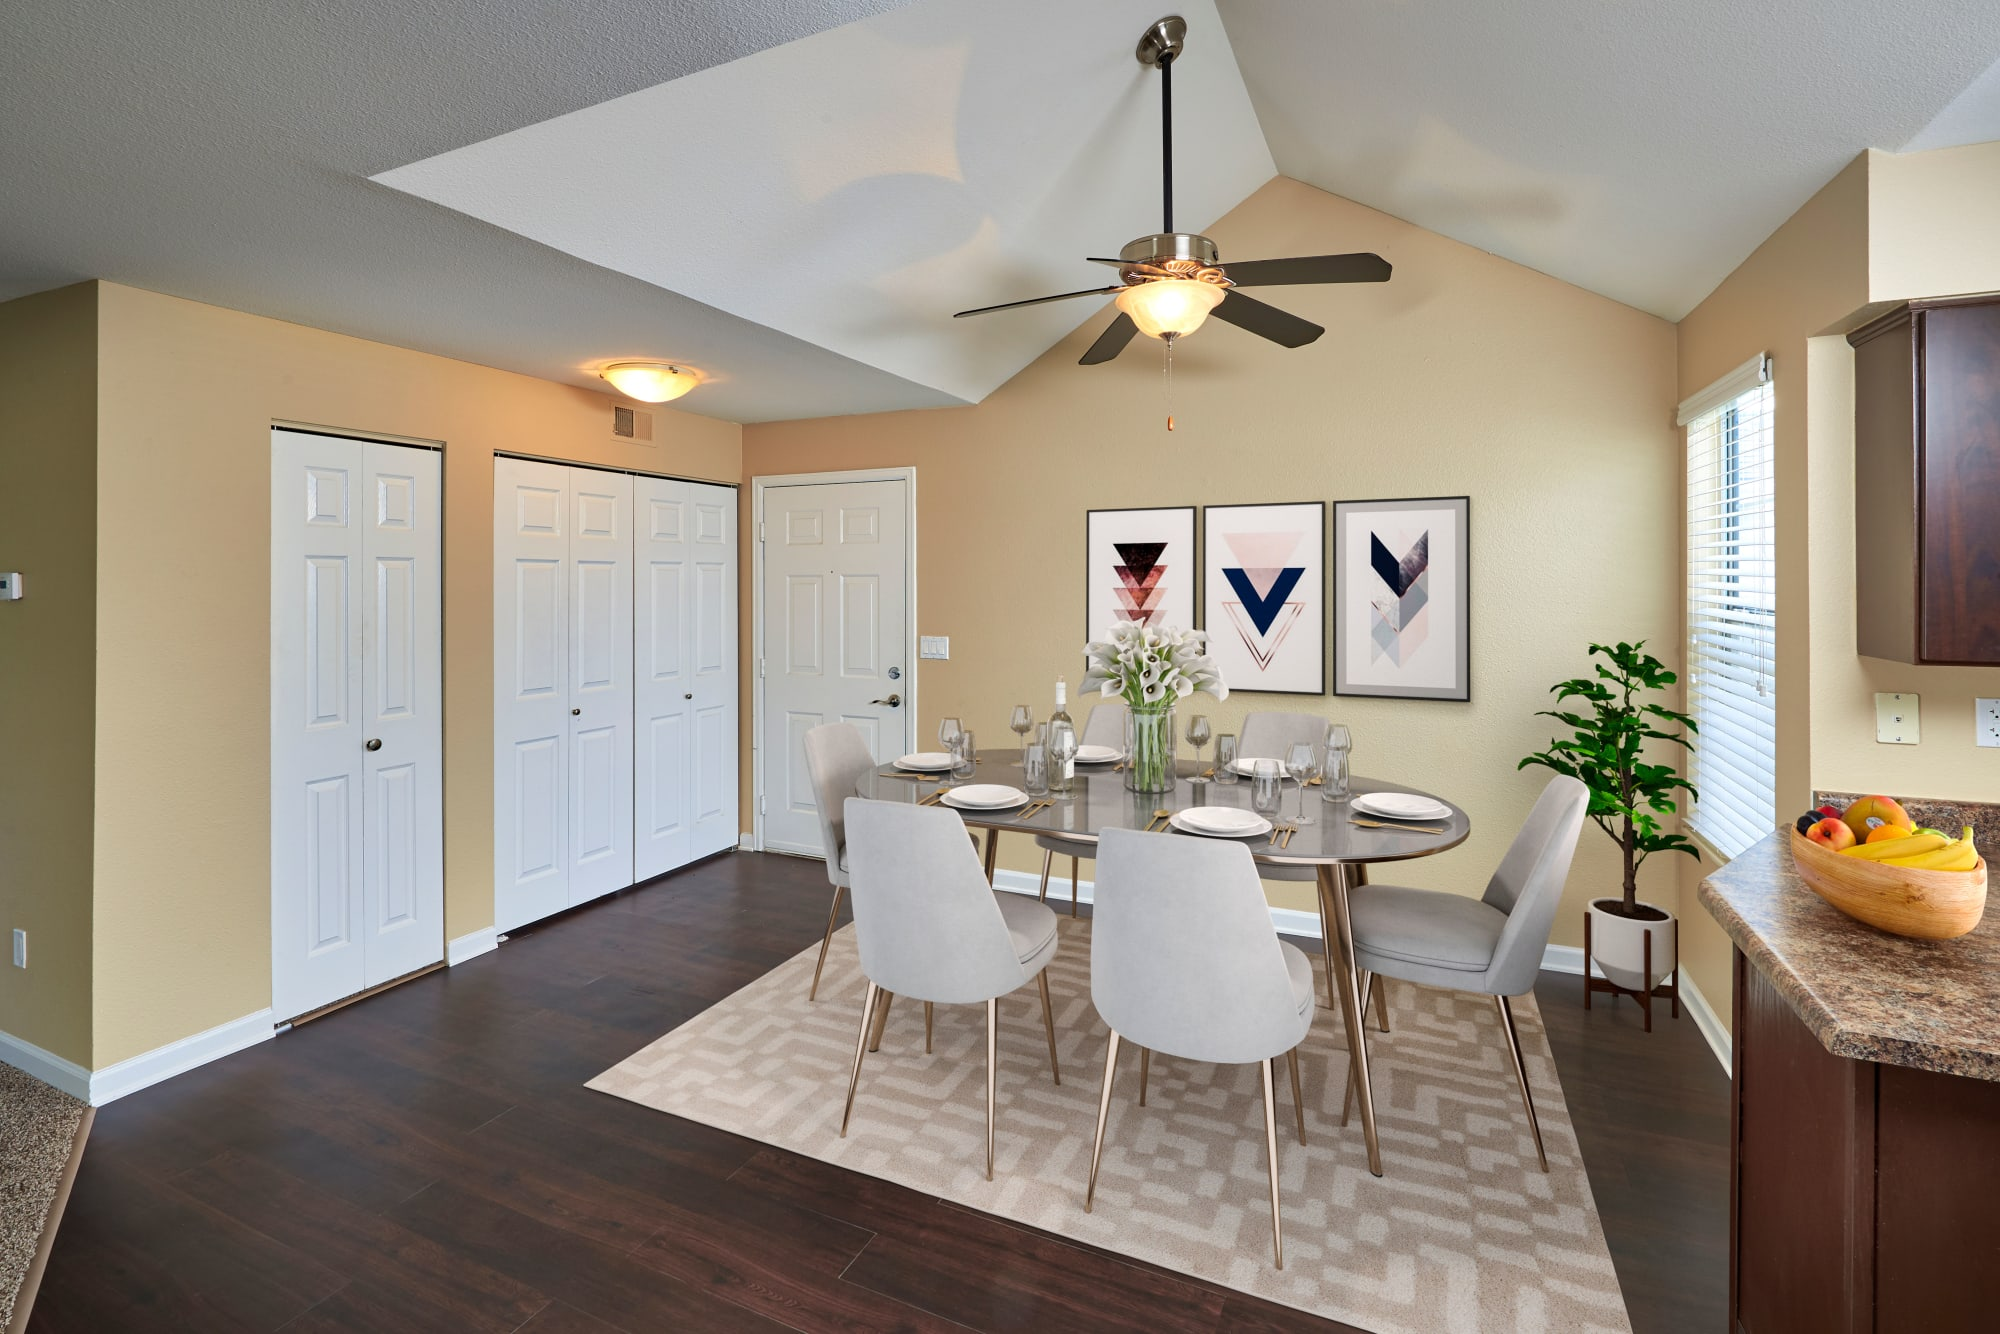 Furnished Dining Room in our floor plans at Villas at Homestead Apartments